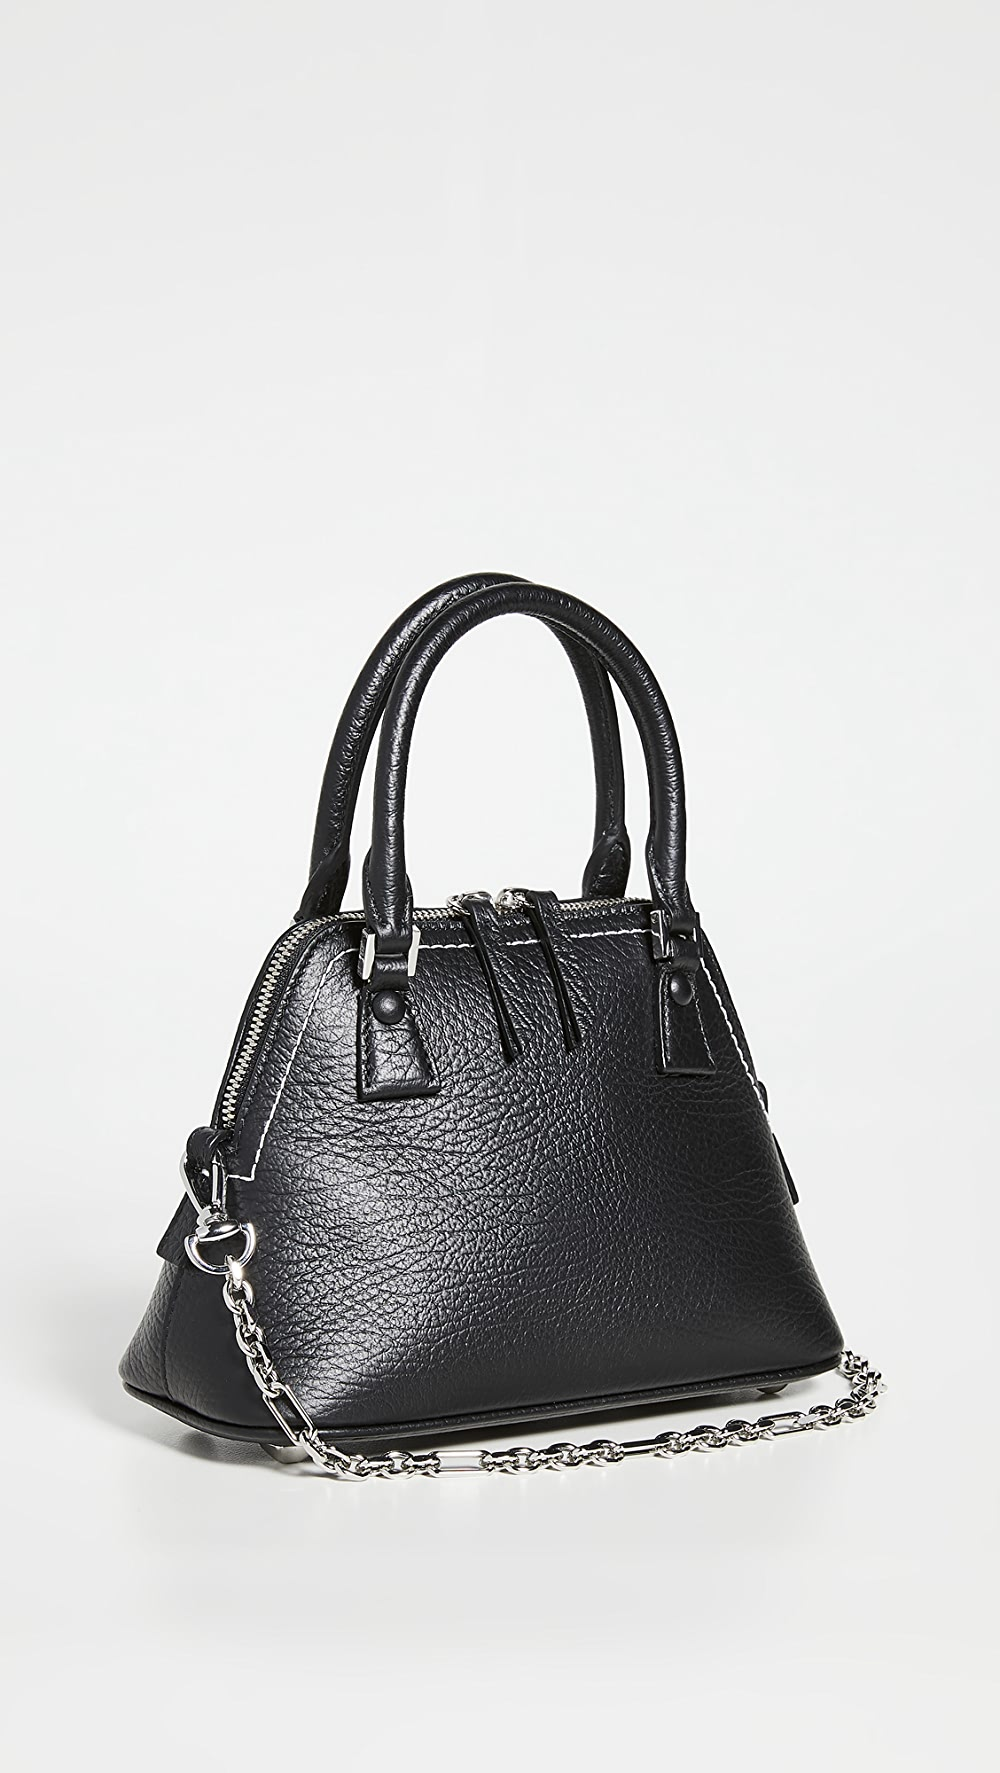 Hearty Maison Margiela - Satchel Bag With The Best Service